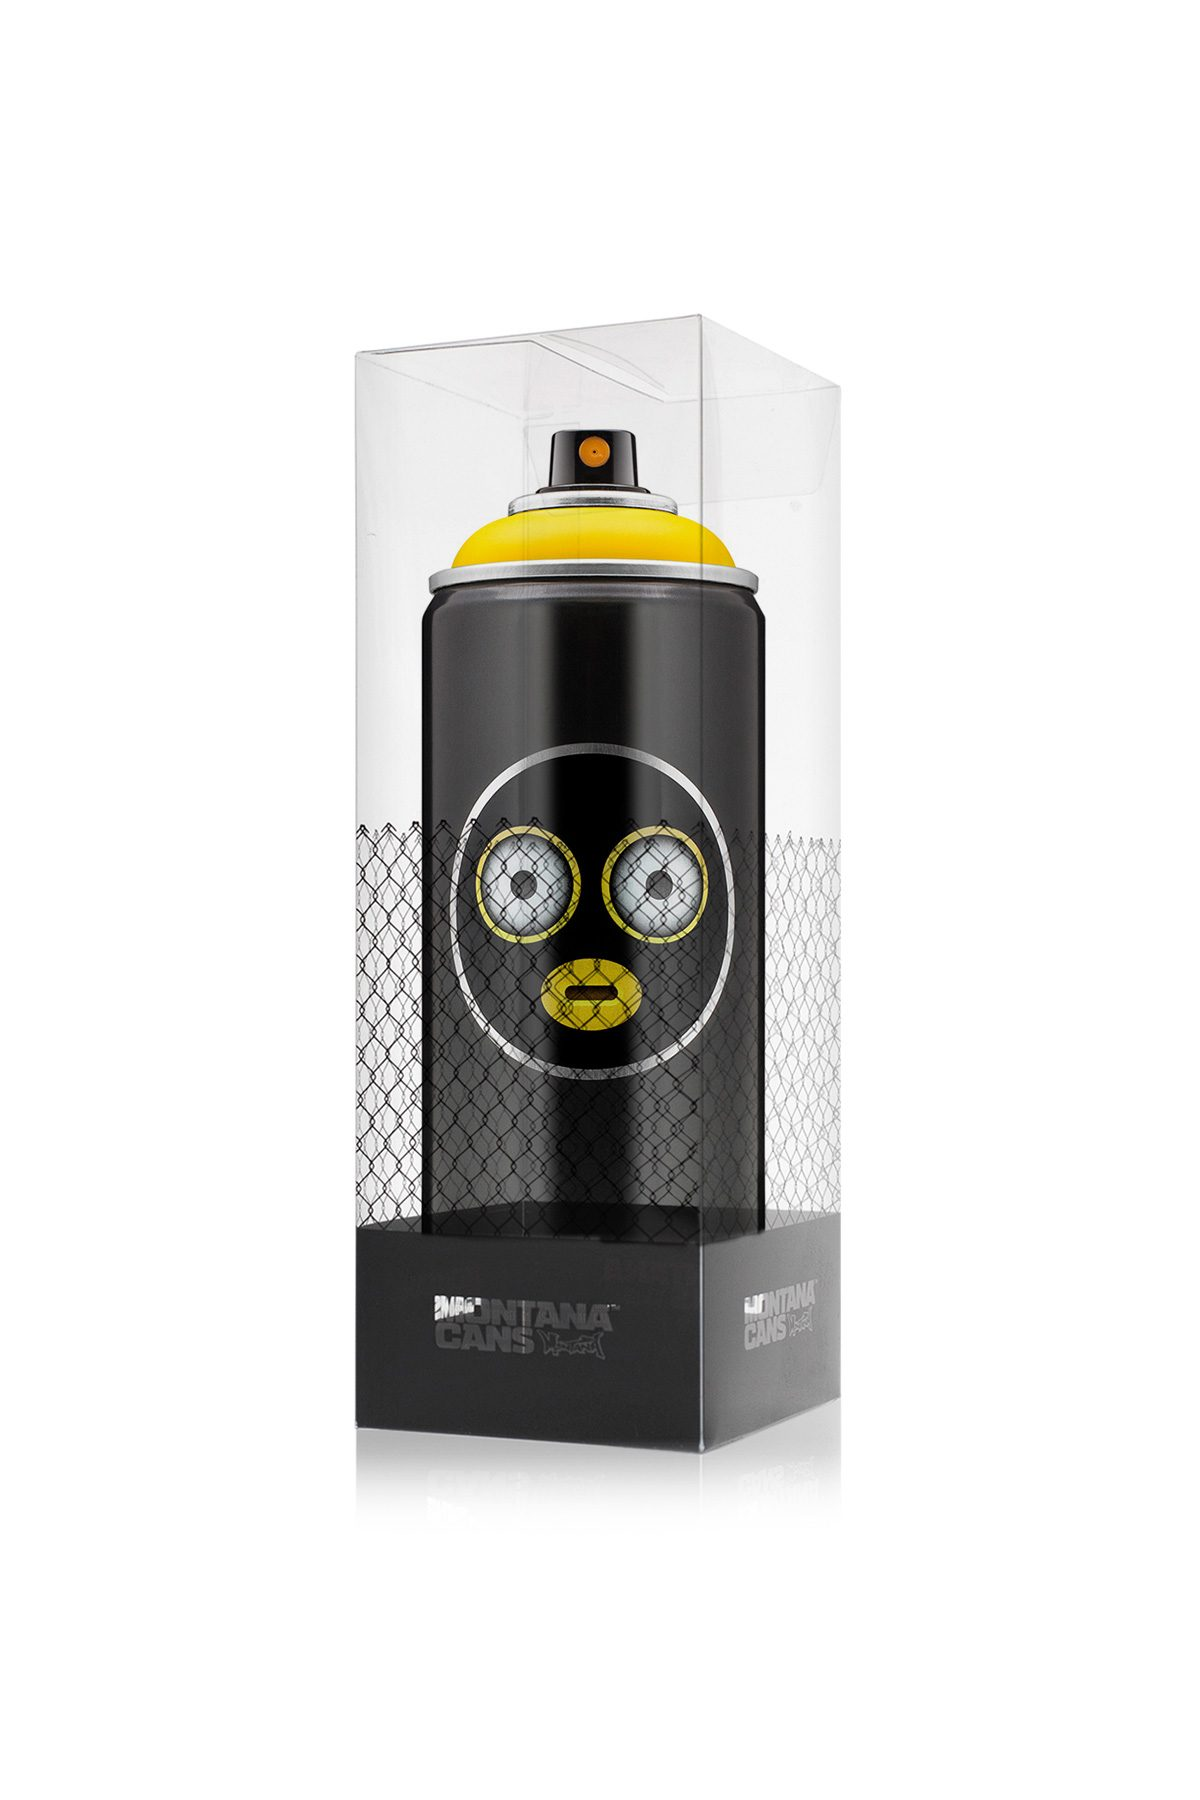 Montana BLACK #EMOJIVANDALS - Kicking Yellow - Limited Edition 400ml